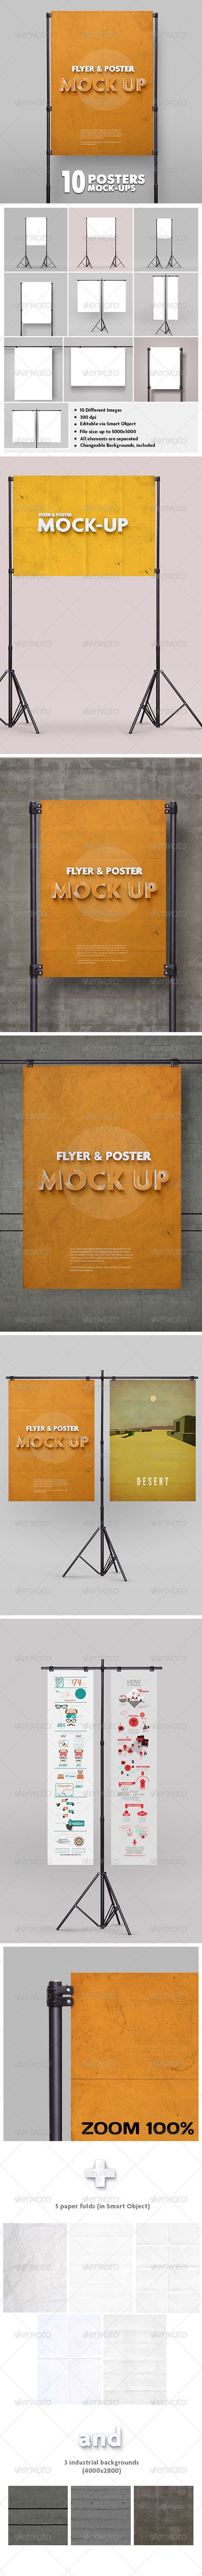 Poster Mockup vol.2 / 10 Different Images - Download…